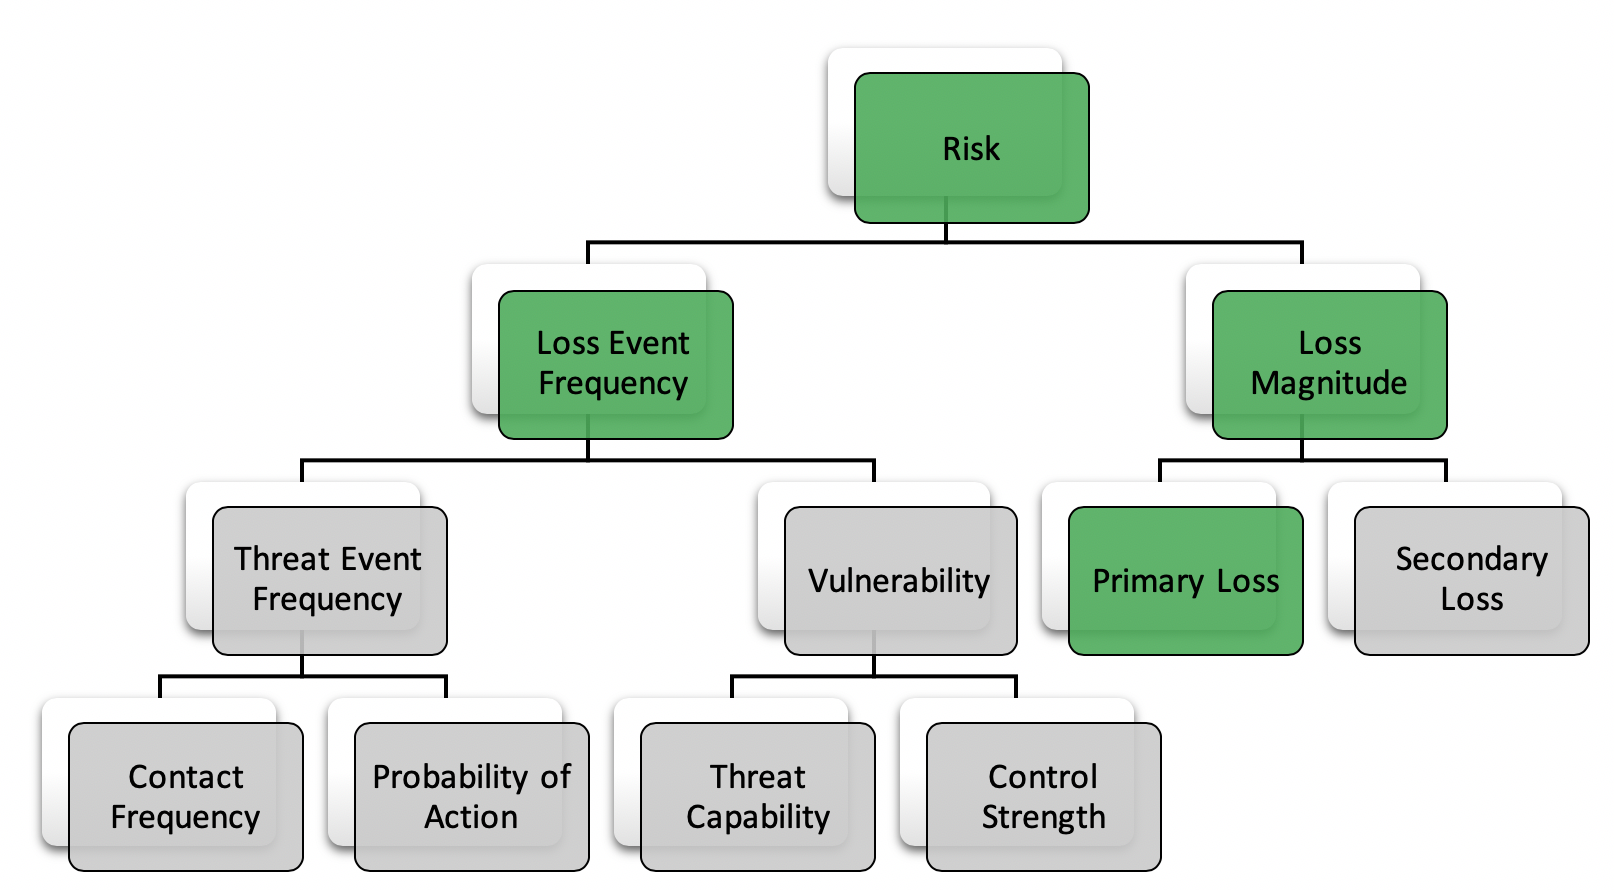 Fig 3: Areas of the FAIR ontology scoped into this assessment, shown in green